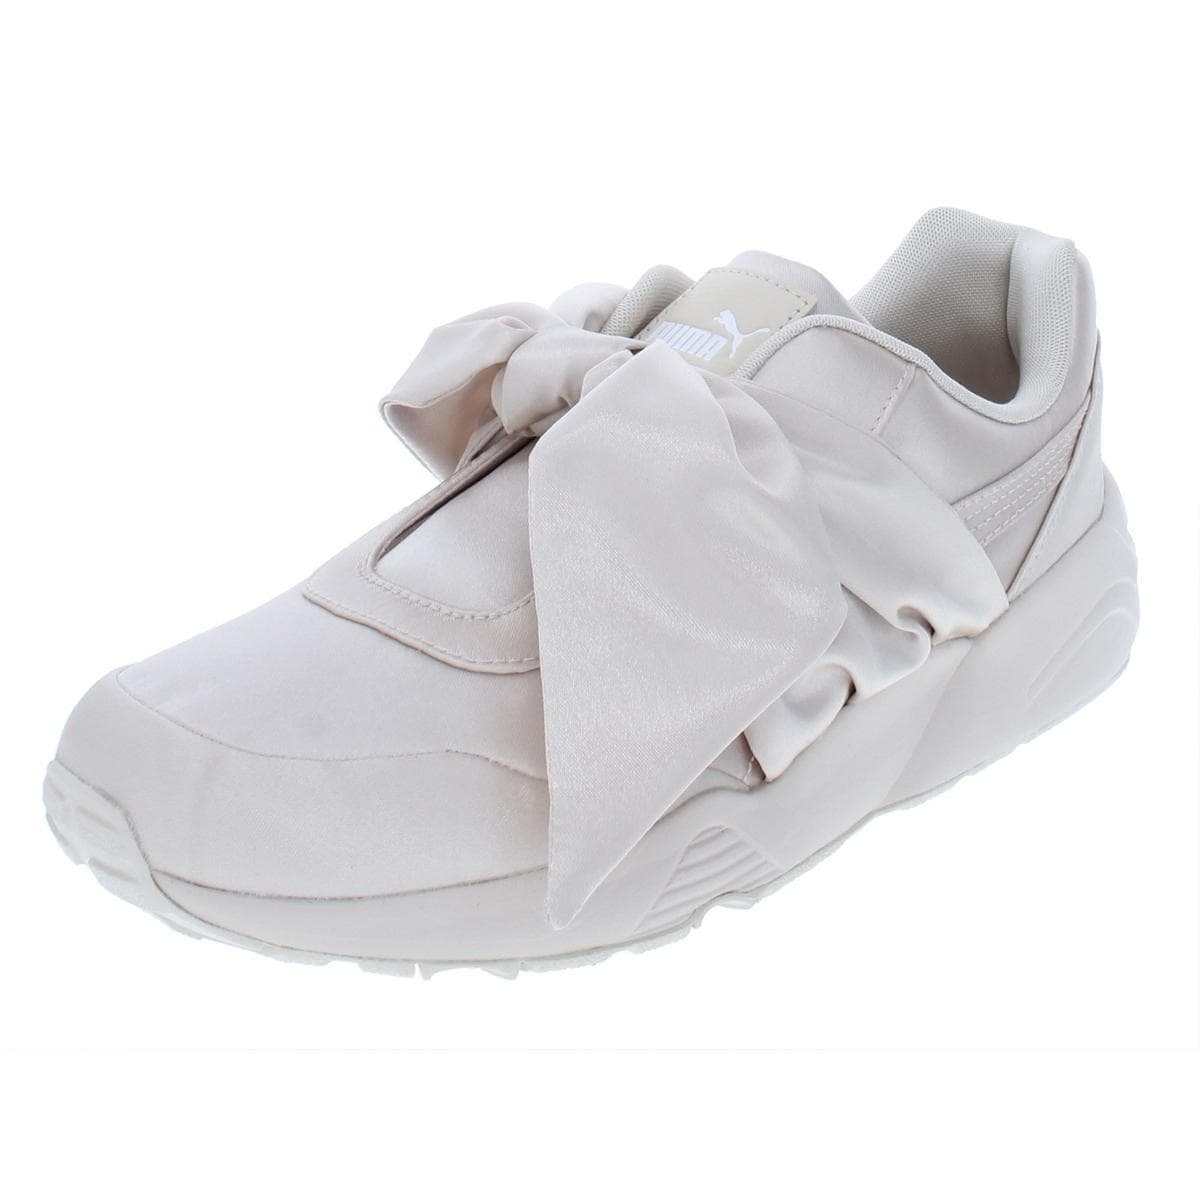 best service c3a53 48e0c Fenty Puma by Rihanna Womens Bow Sneaker Fashion Sneakers Satin Bow